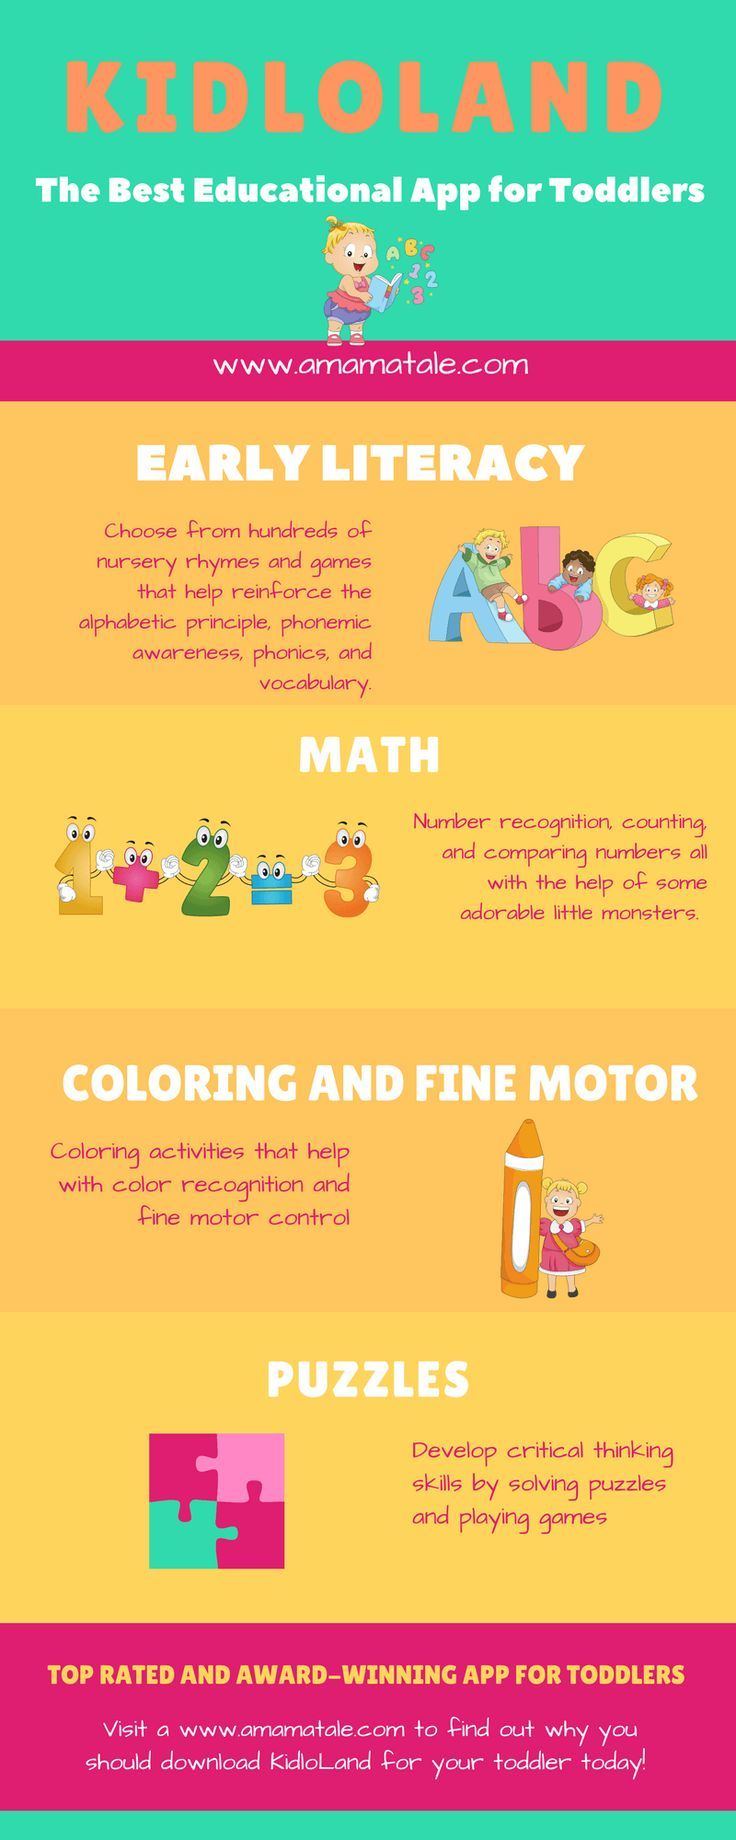 Why KidloLand Is The Best Educational App For Toddlers